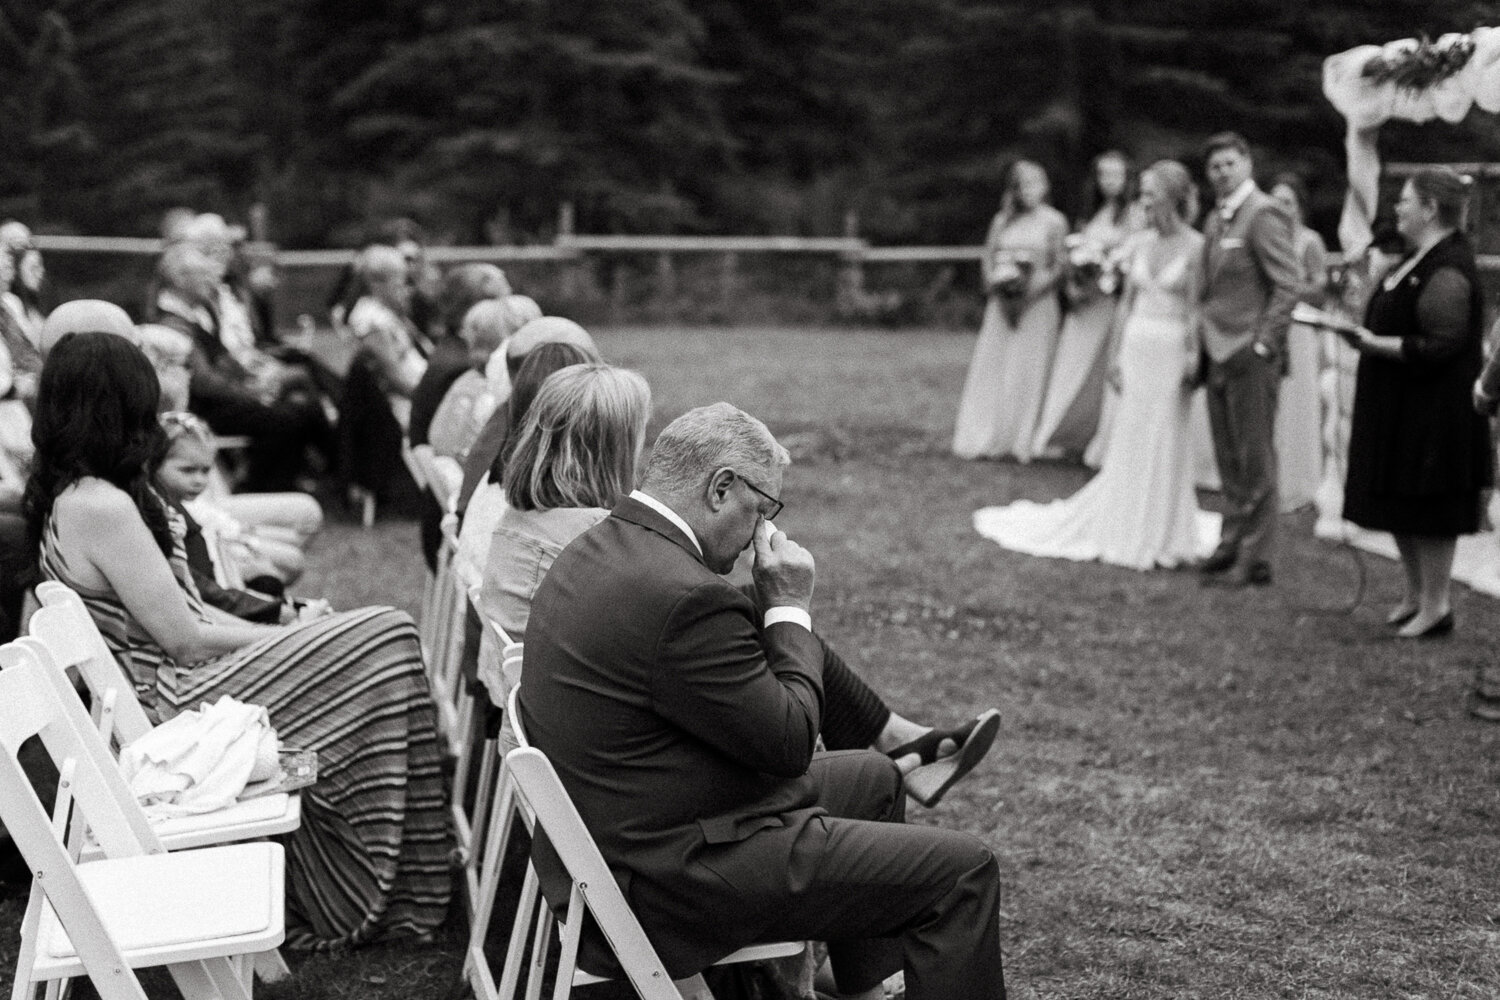 68-Canmore-Alberta-Real-Wedding-Best-Wedding-Photographers-95.JPG